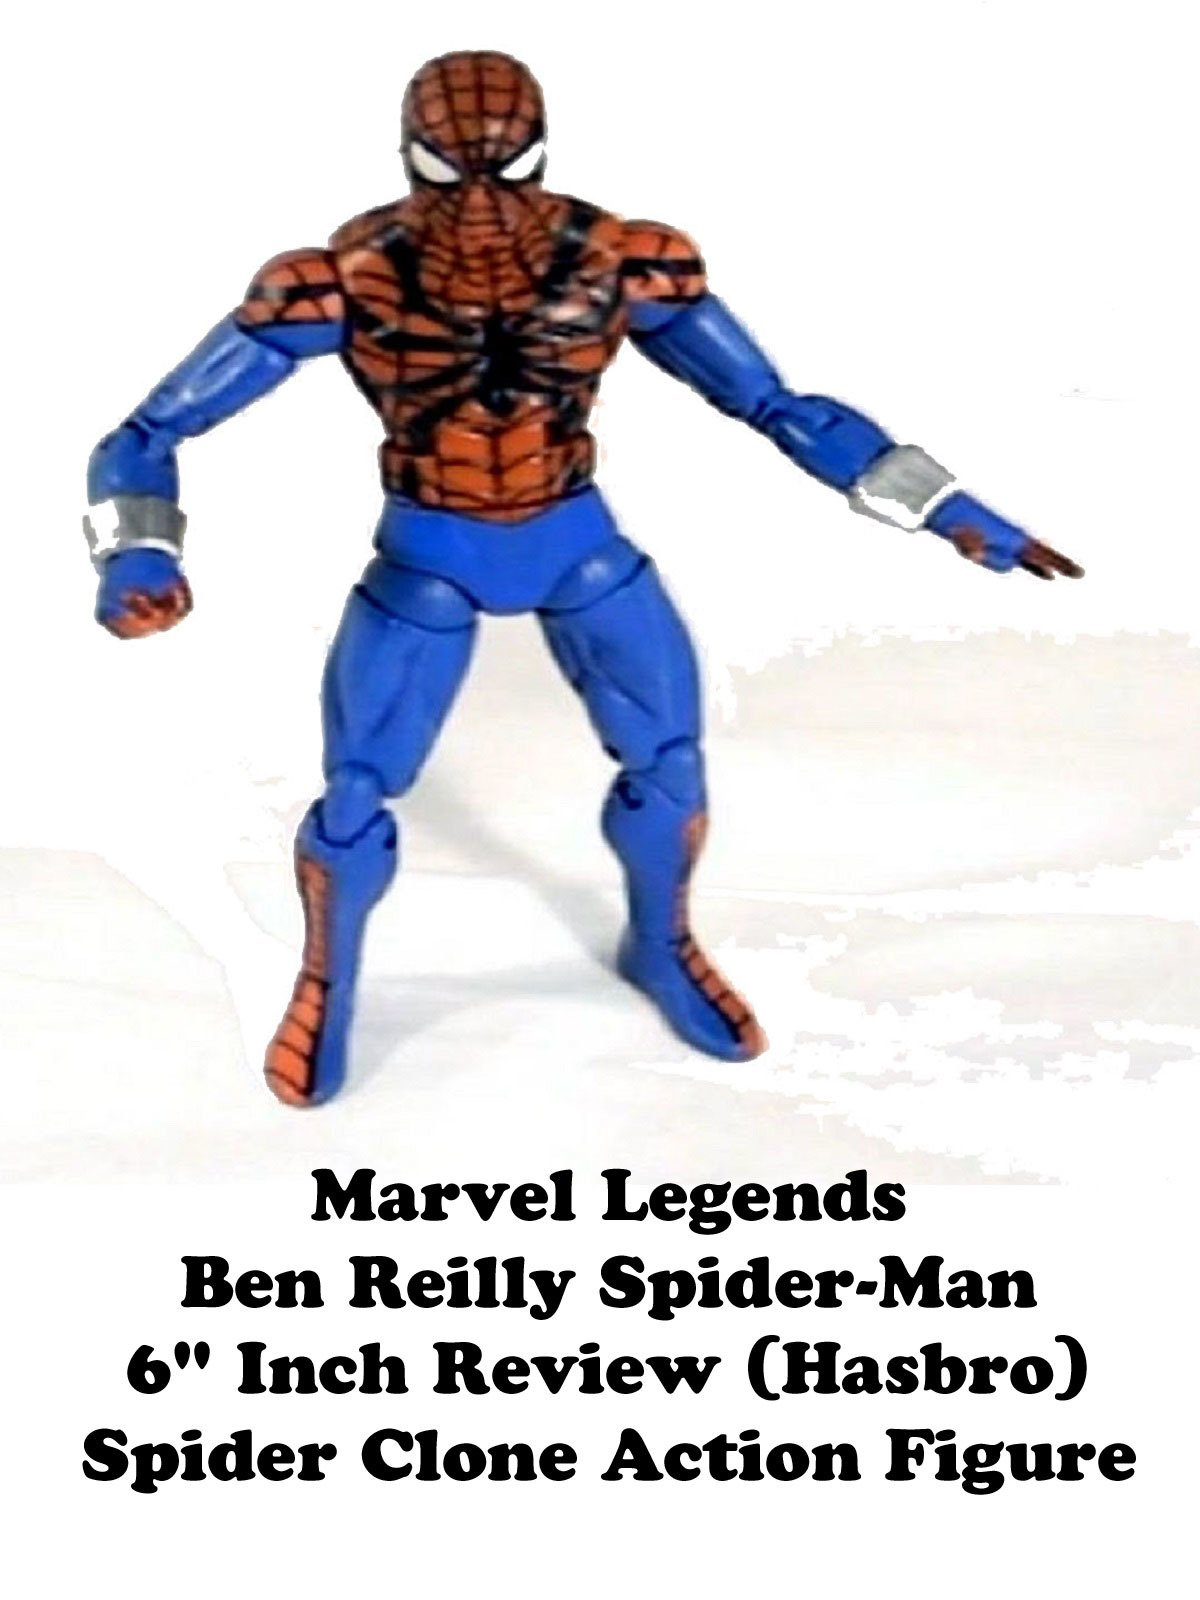 "Review: Marvel Legends Ben Reilly Spider-Man 6"" Inch Review (Hasbro) Spider Clone Action Figure"